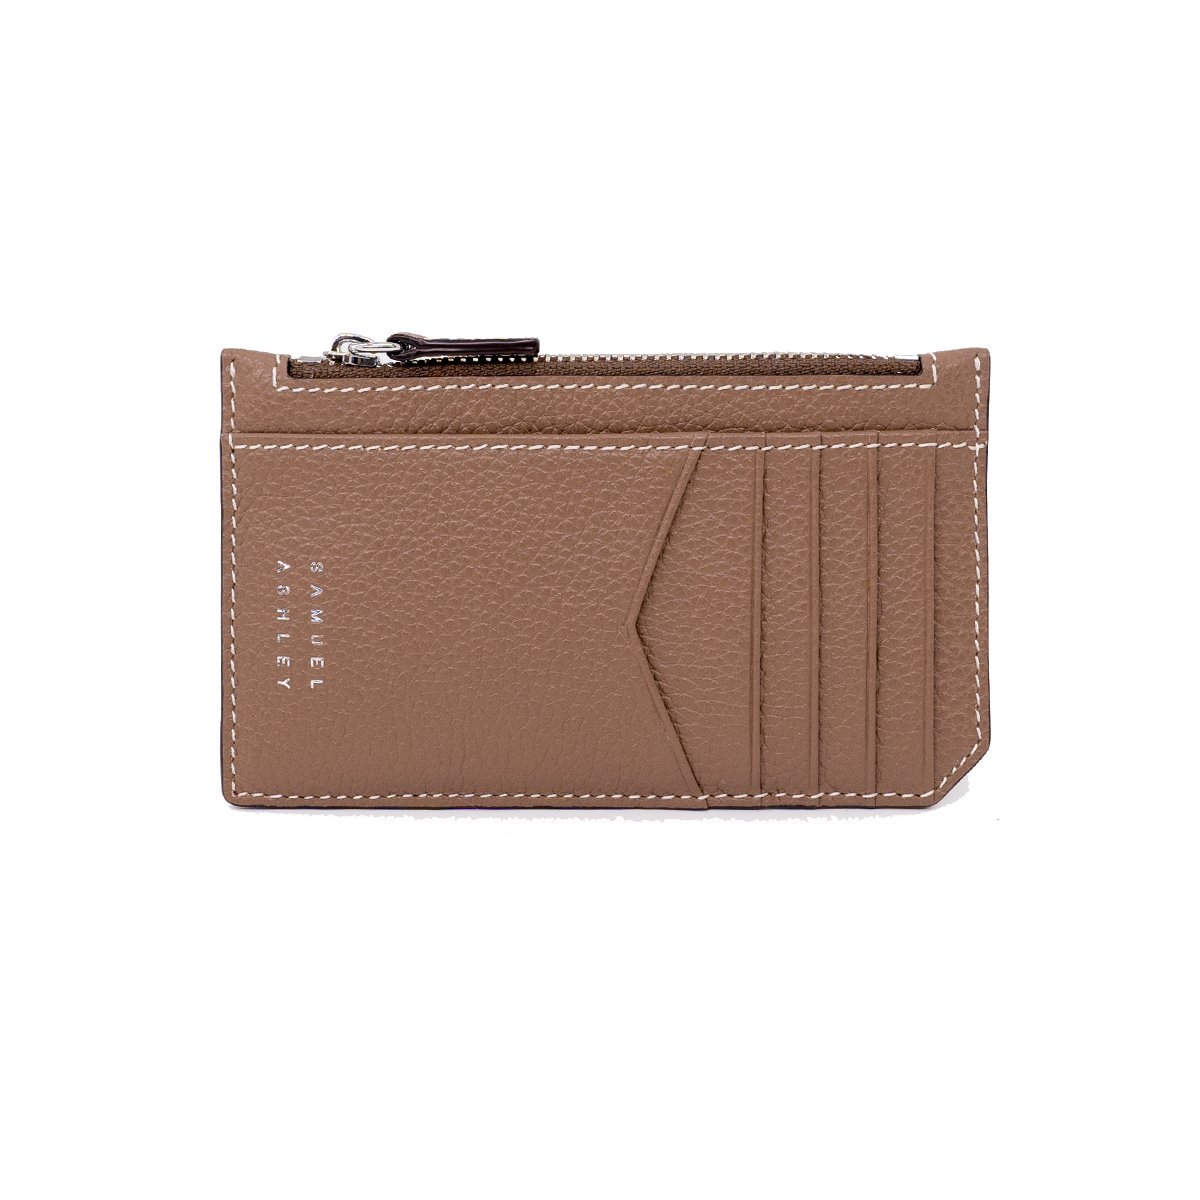 Nicky Card Case with Zip Pocket - Truffle